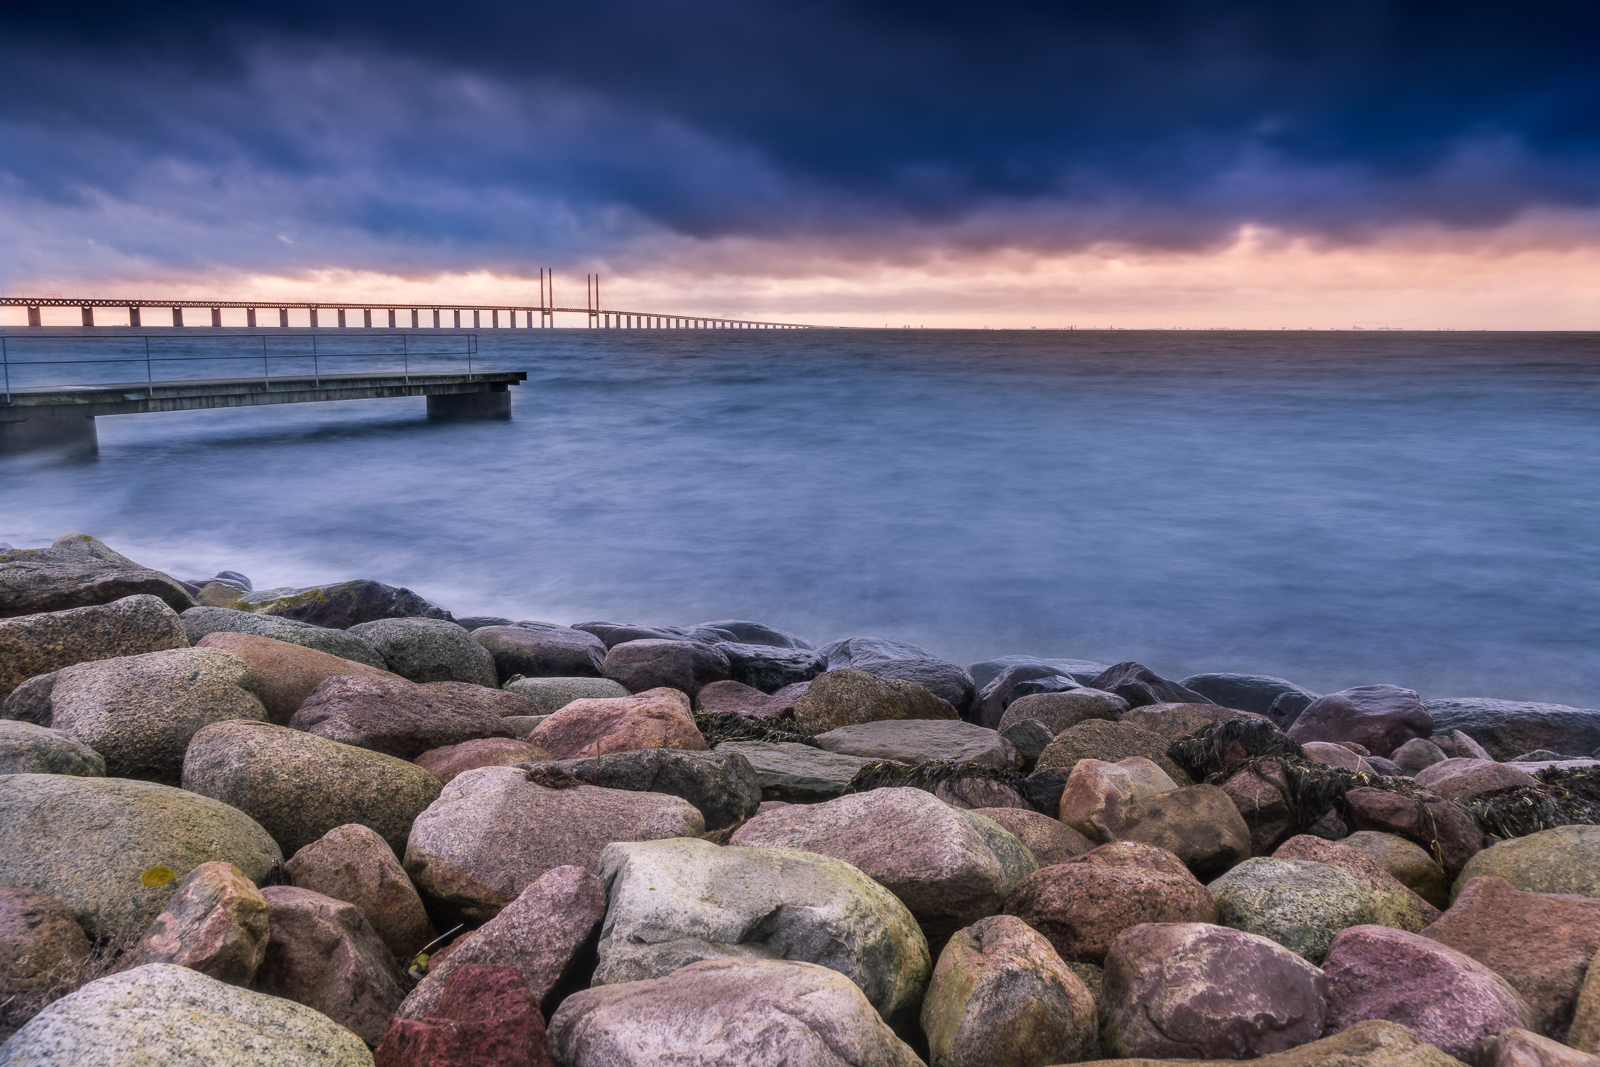 The Öresund bridge in the background with the batching pier in the foreground